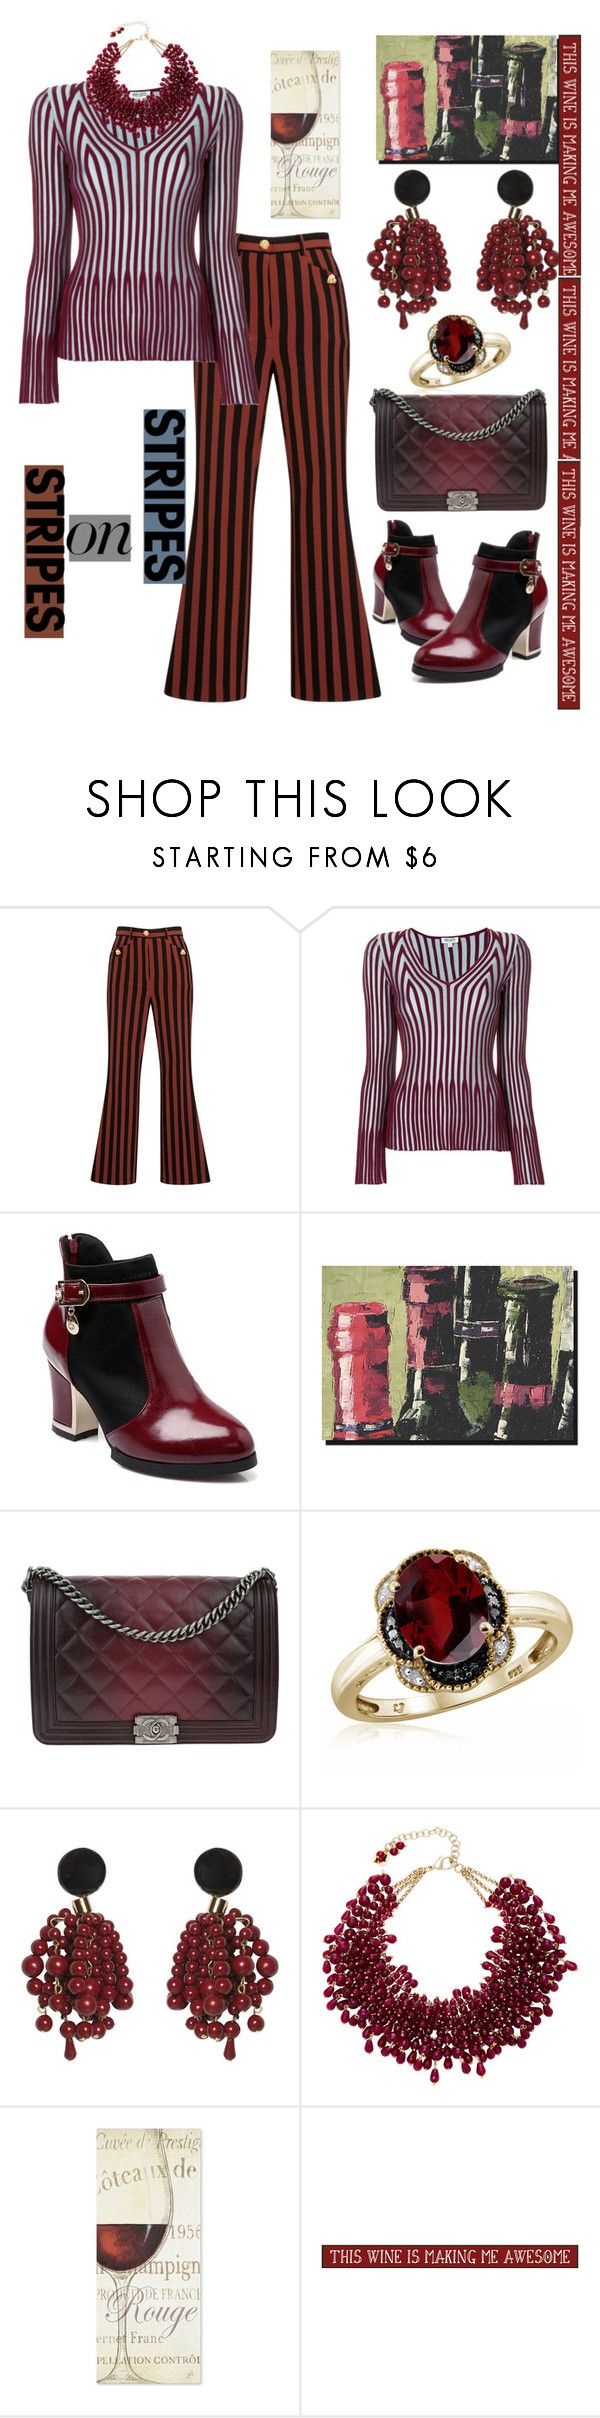 """""""Stripes on Stripes & Burgundy Wine"""" by mdfletch ❤ liked on Polyvore featuring Dolce&Gabbana, Kenzo, Somerset House, Chanel, Jewelonfire, Marni, Rosantica, My Word!, stripesonstripes and PatternChallenge"""